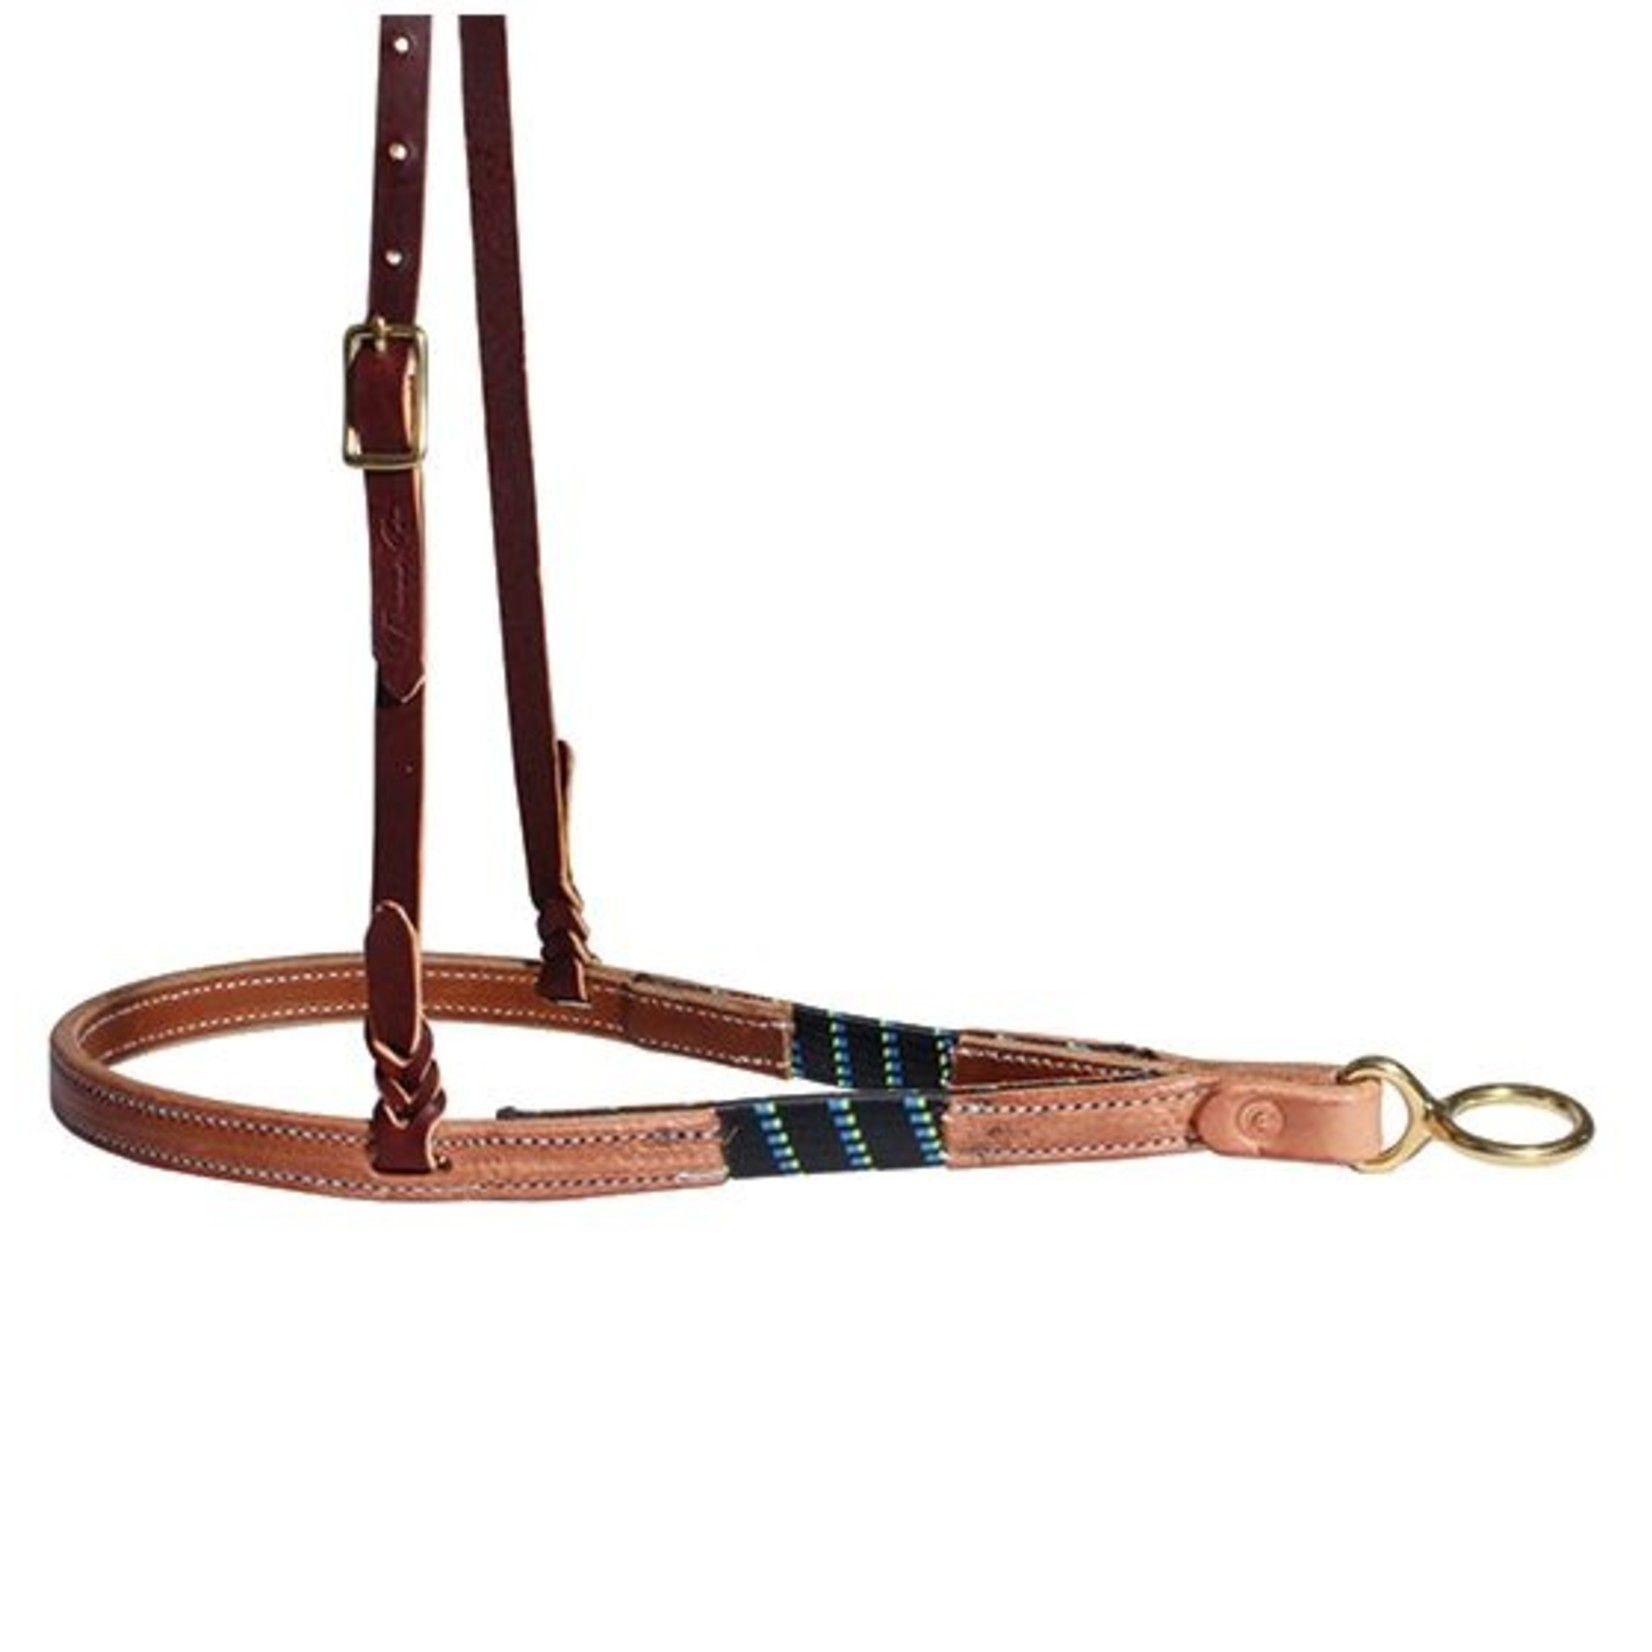 Professional's Choice Ultimate Tiedown BlkStripe